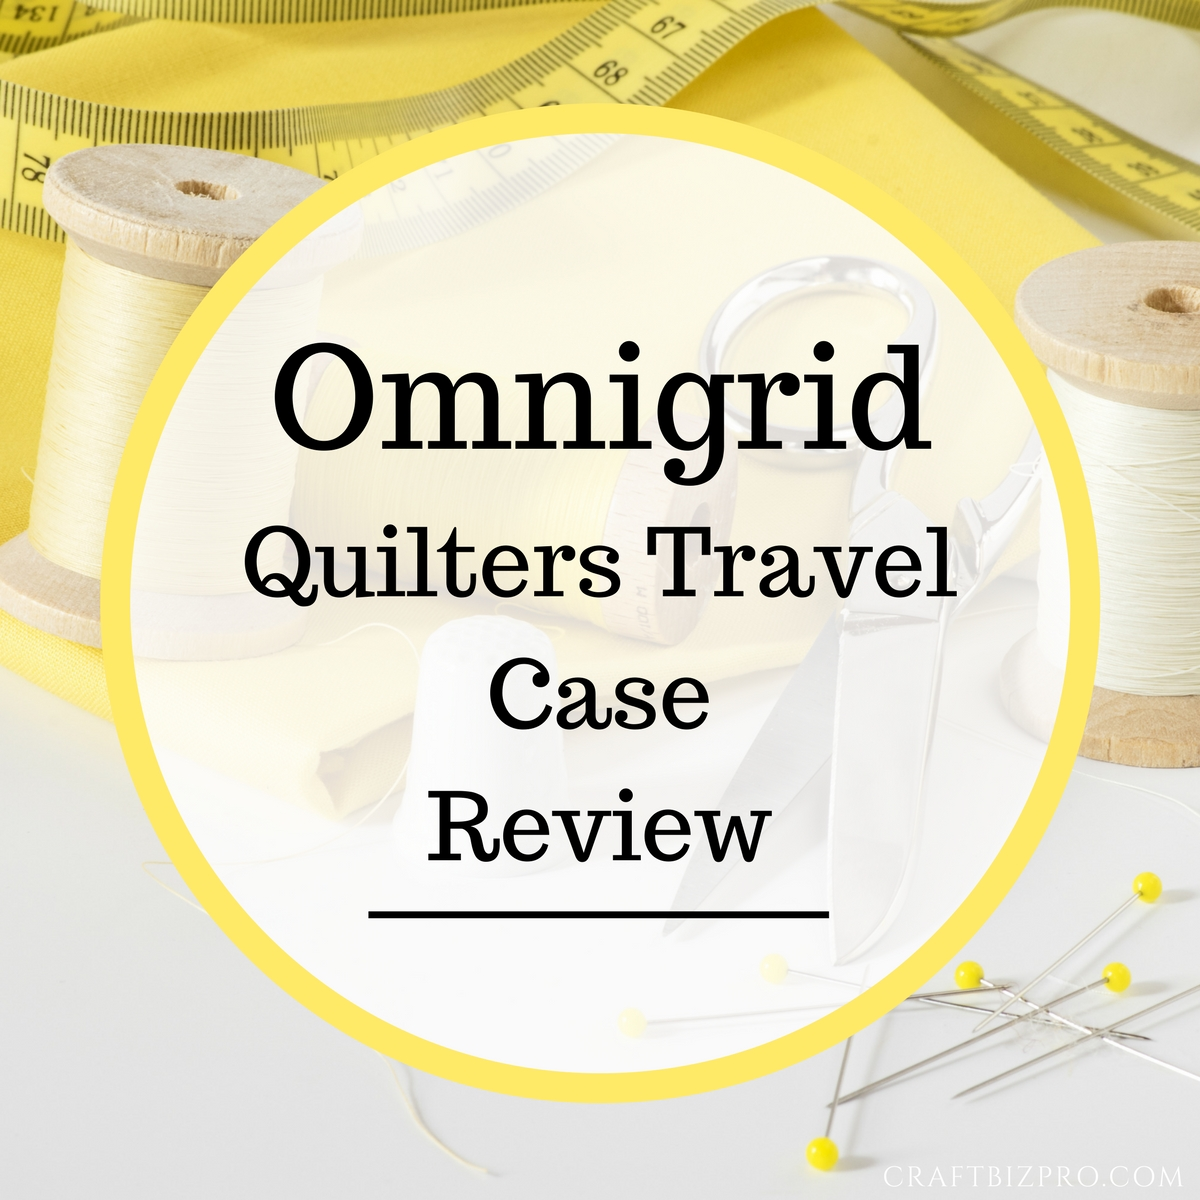 Omnigrid Quilters Travel Case Review